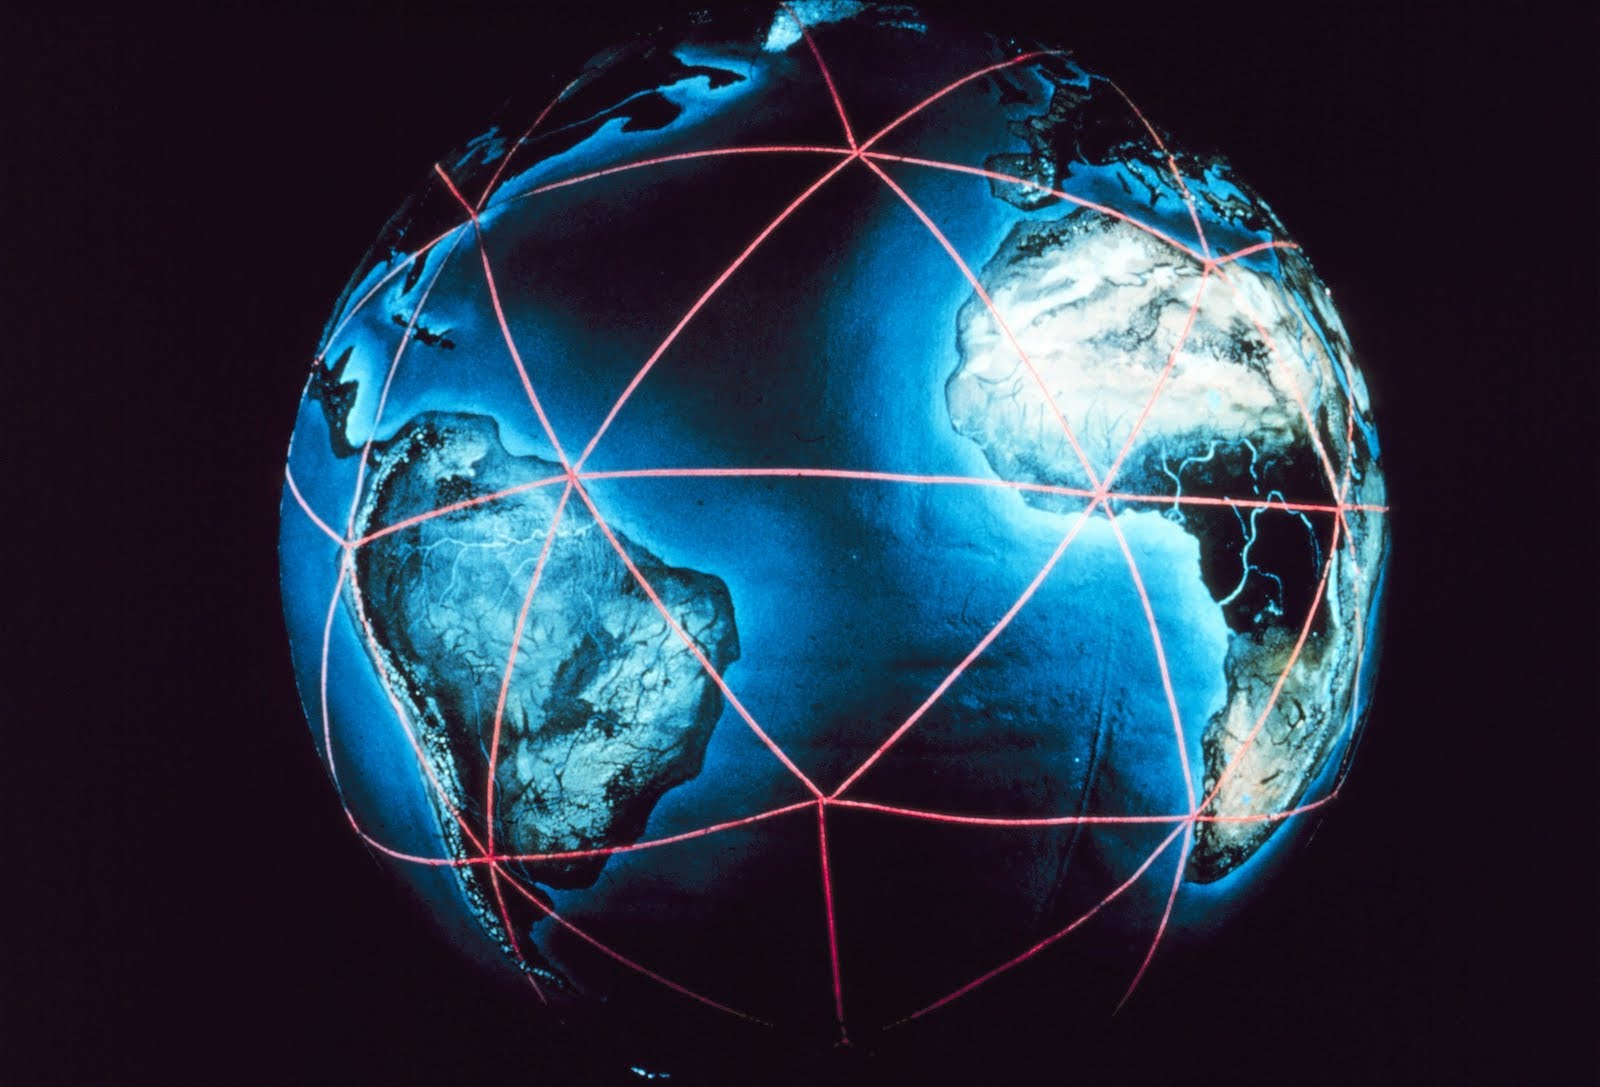 globality vs globalization Define globalism: a national policy nationalism vs globalism, leadership of the free world vs america first globality globalization test your vocabulary.